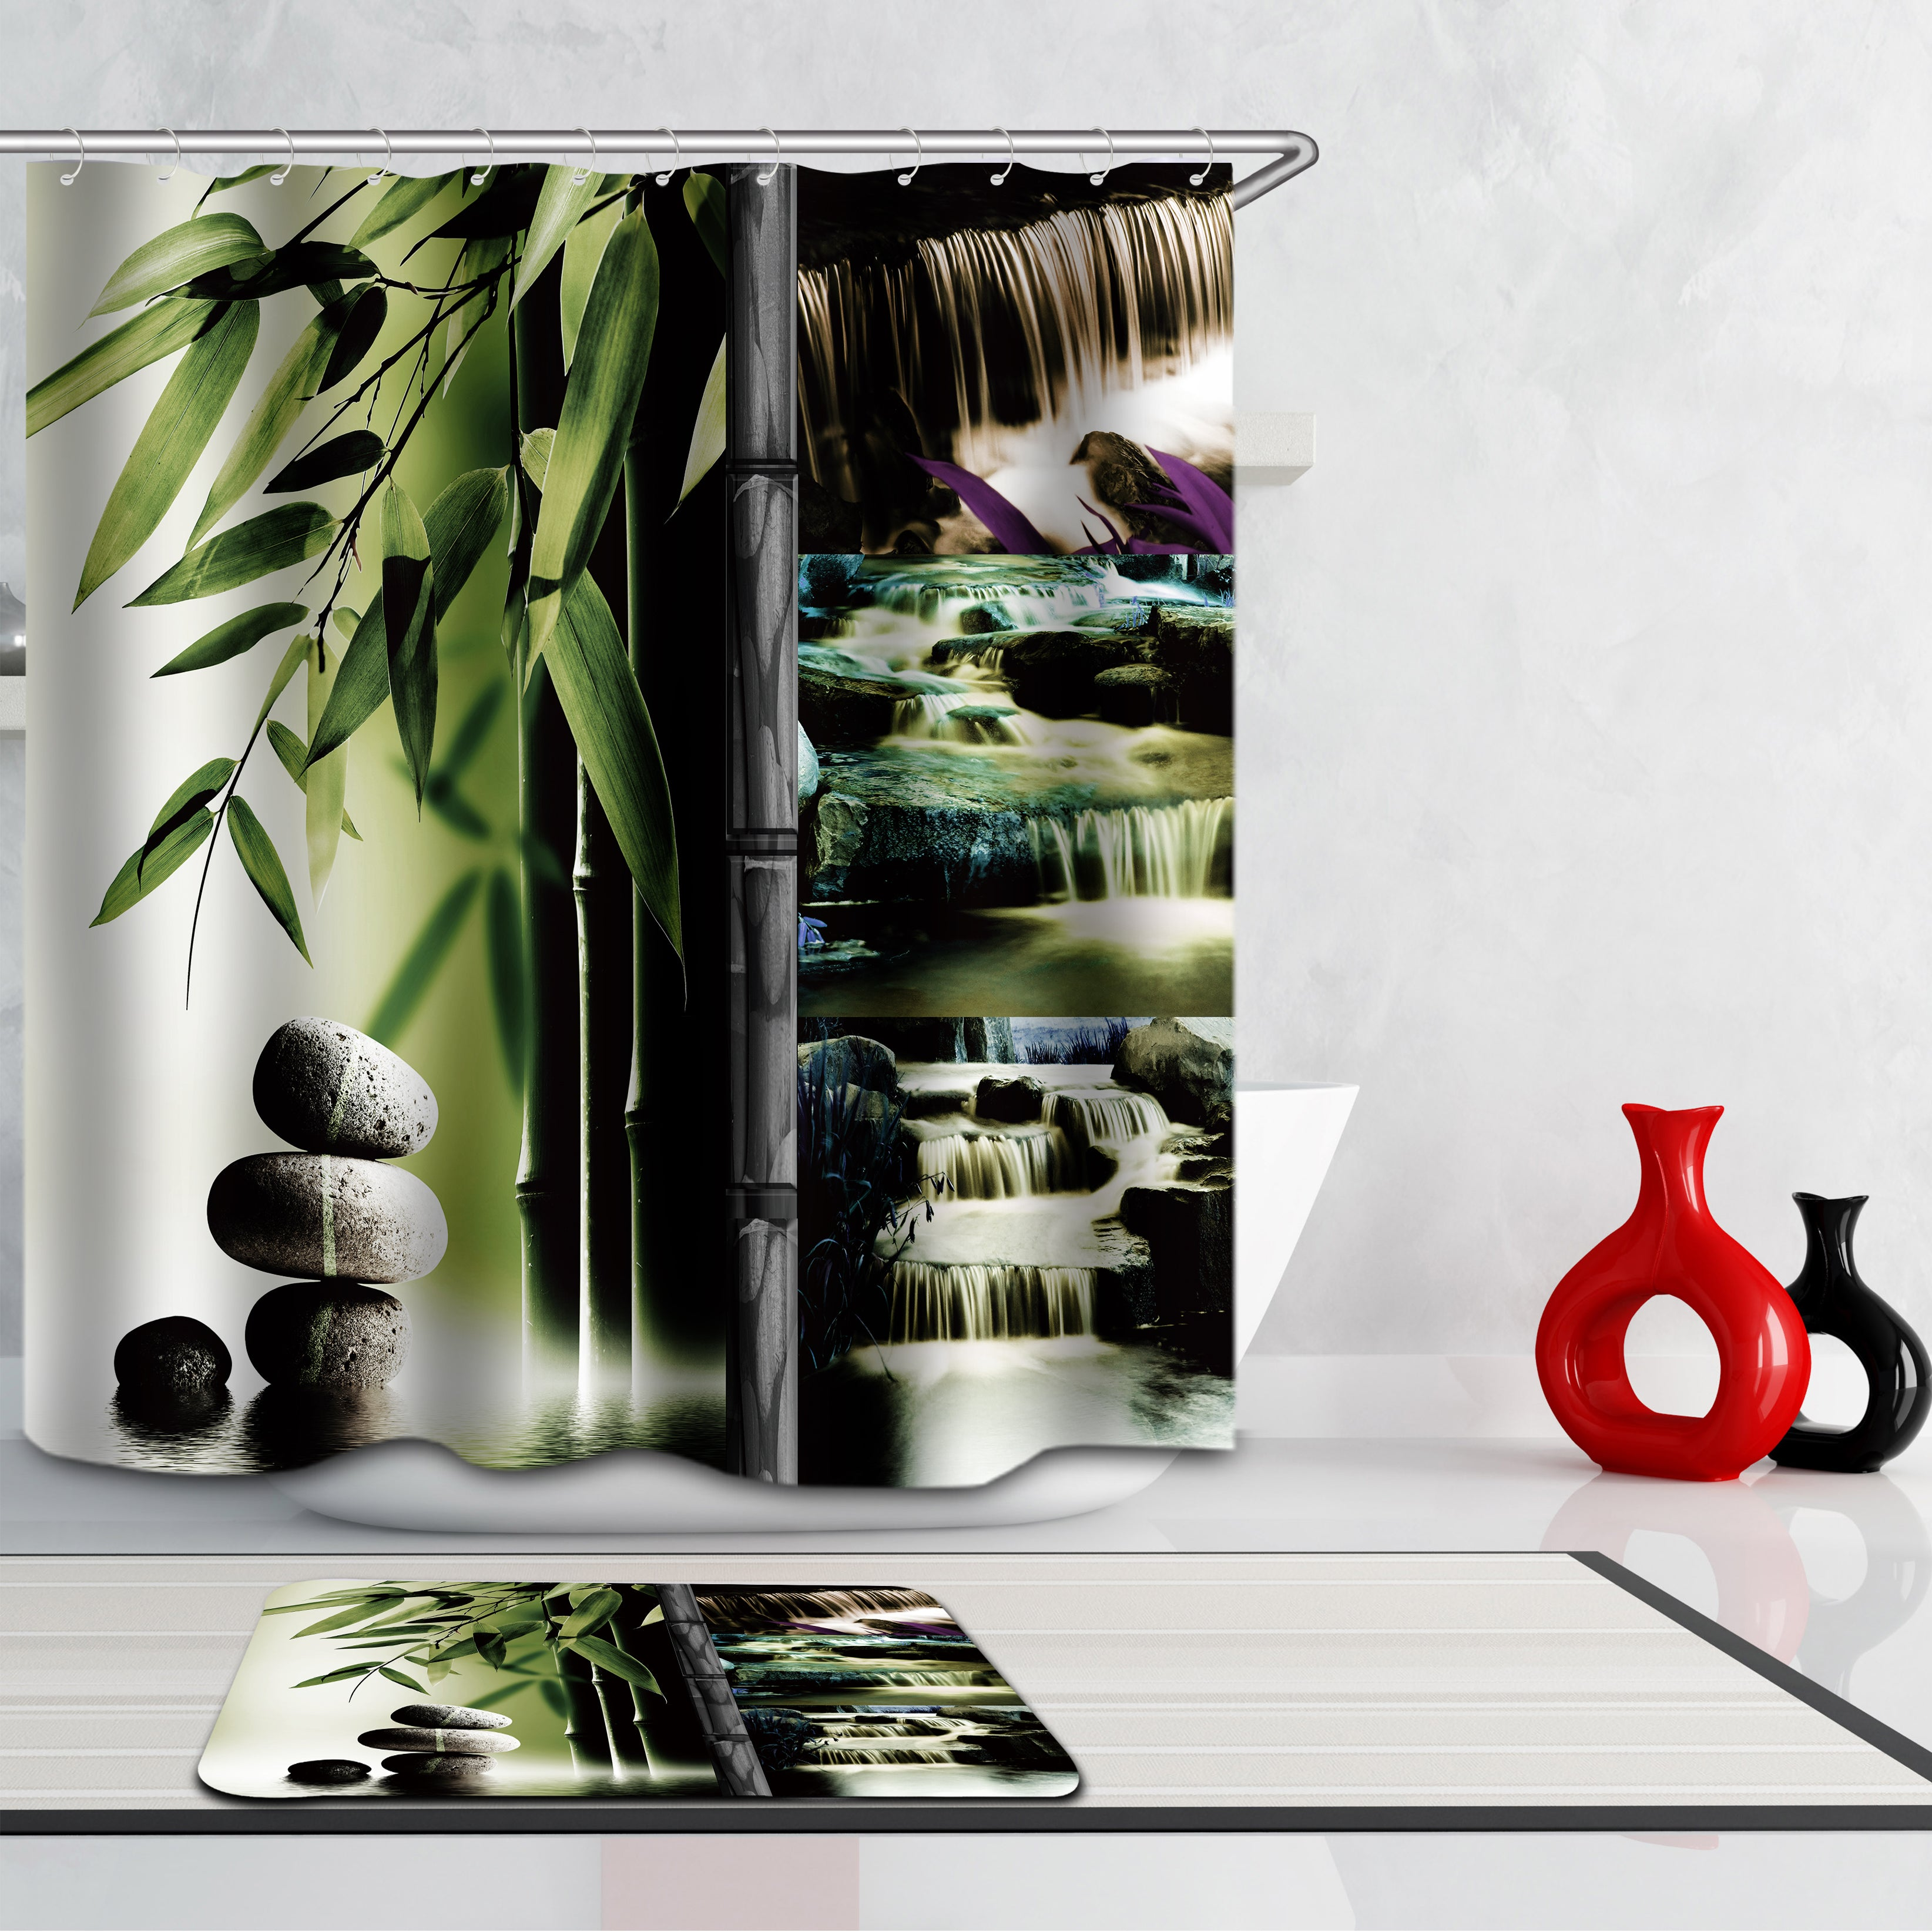 Bamboo Shower Curtains Fabric Funny Green Polyester Cloth Print Bathroom Curtains Fabric Shower Curtains